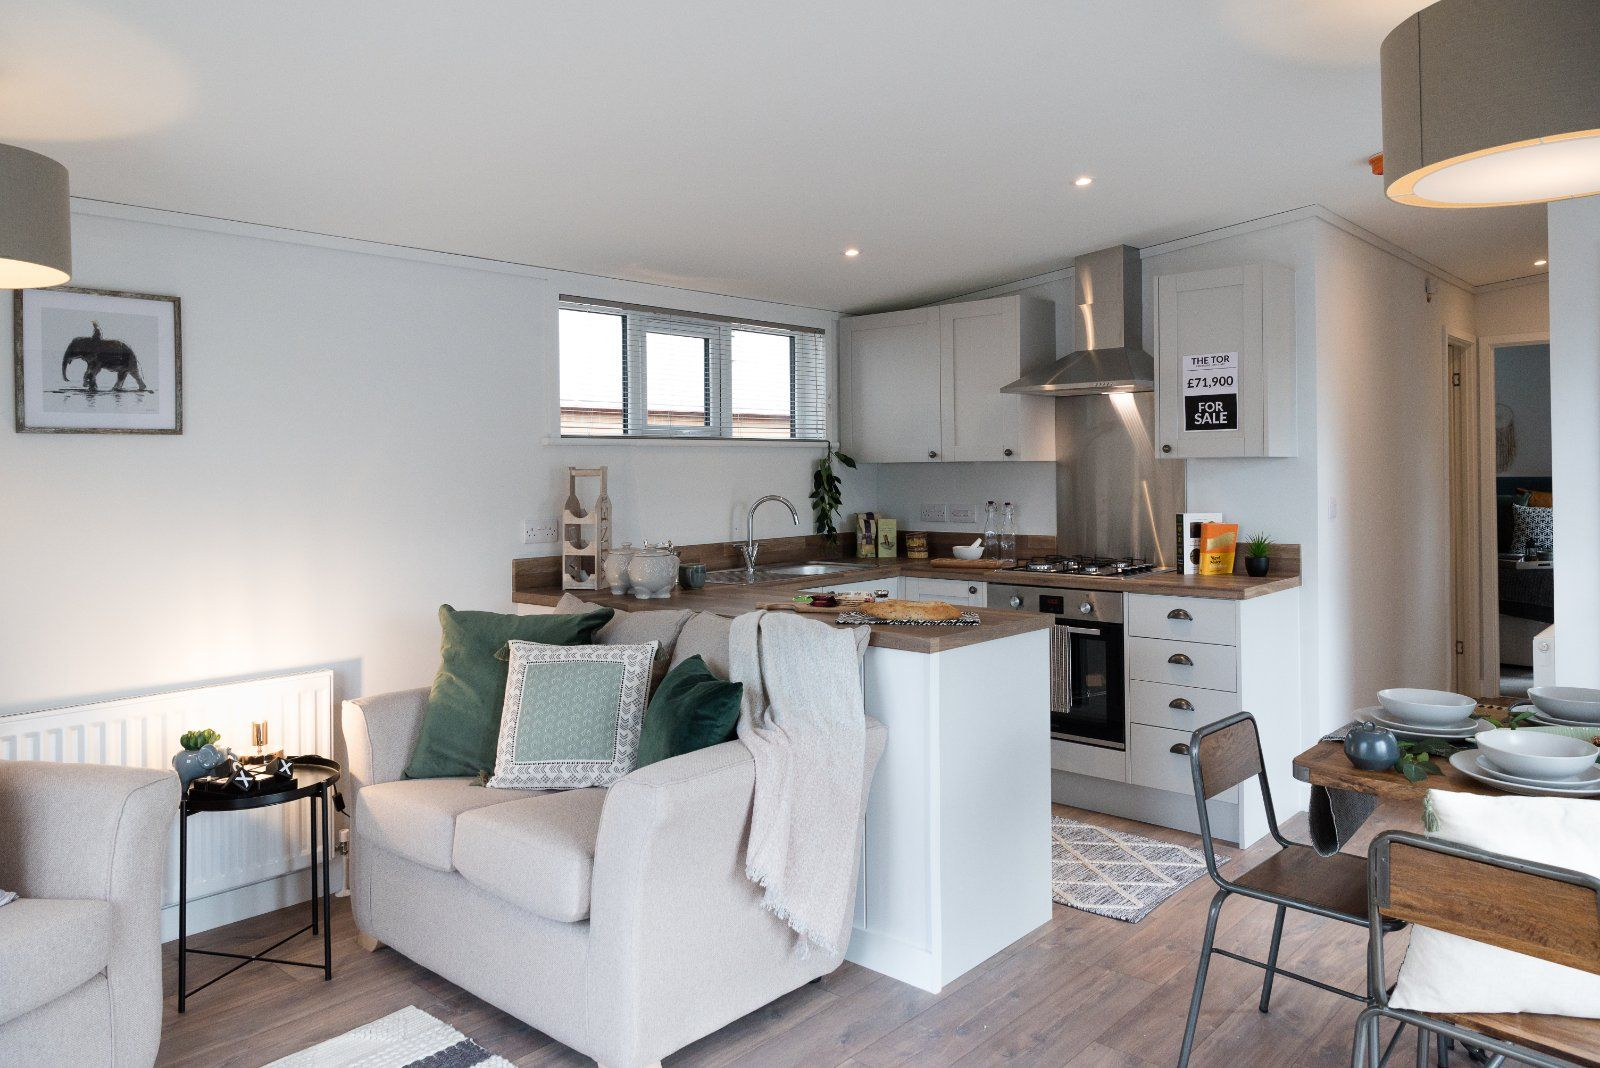 Property photo 1 of 9. Open Plan